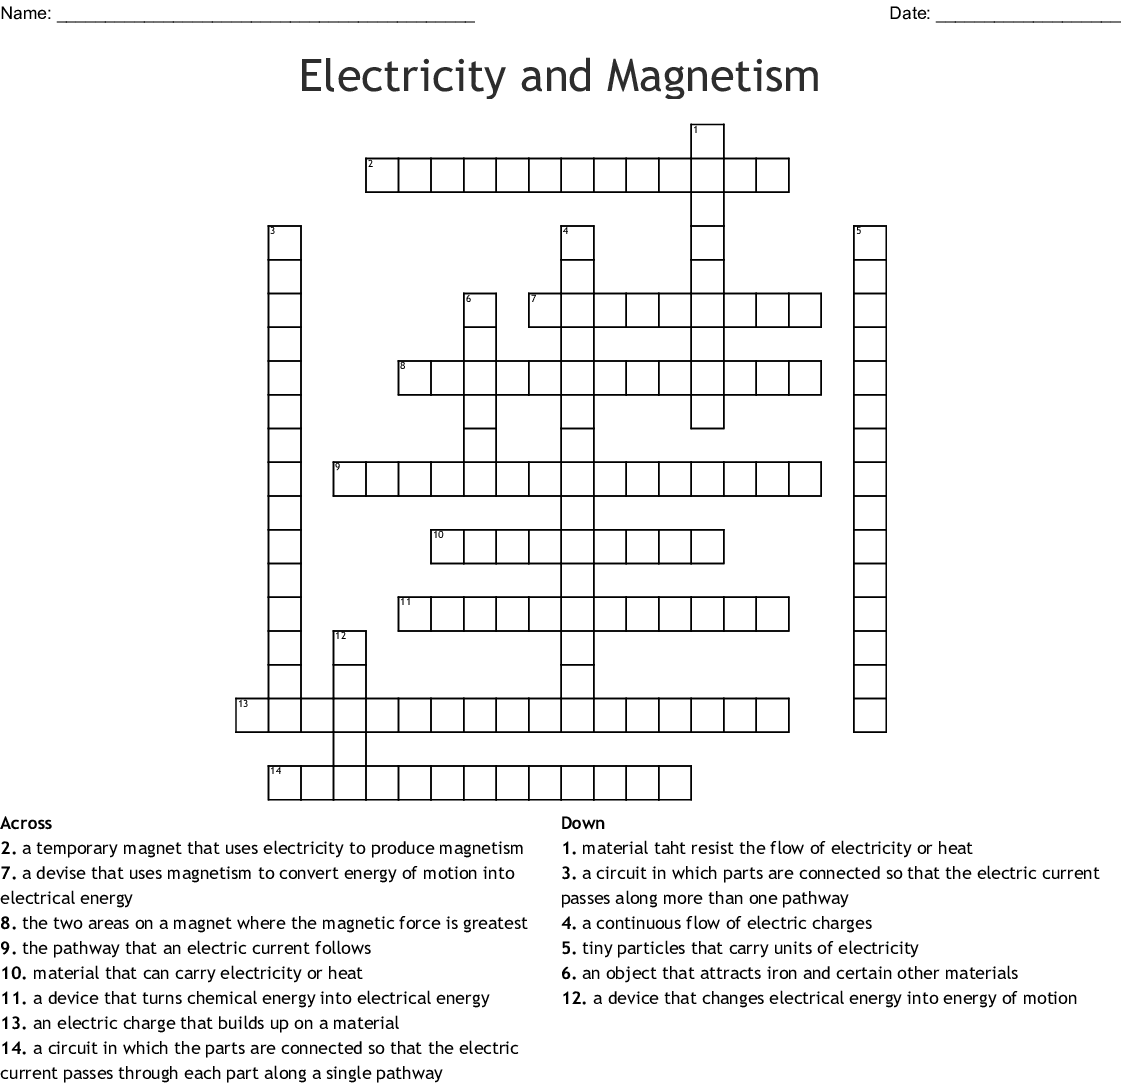 Electricity and Magnetism Crossword - WordMint